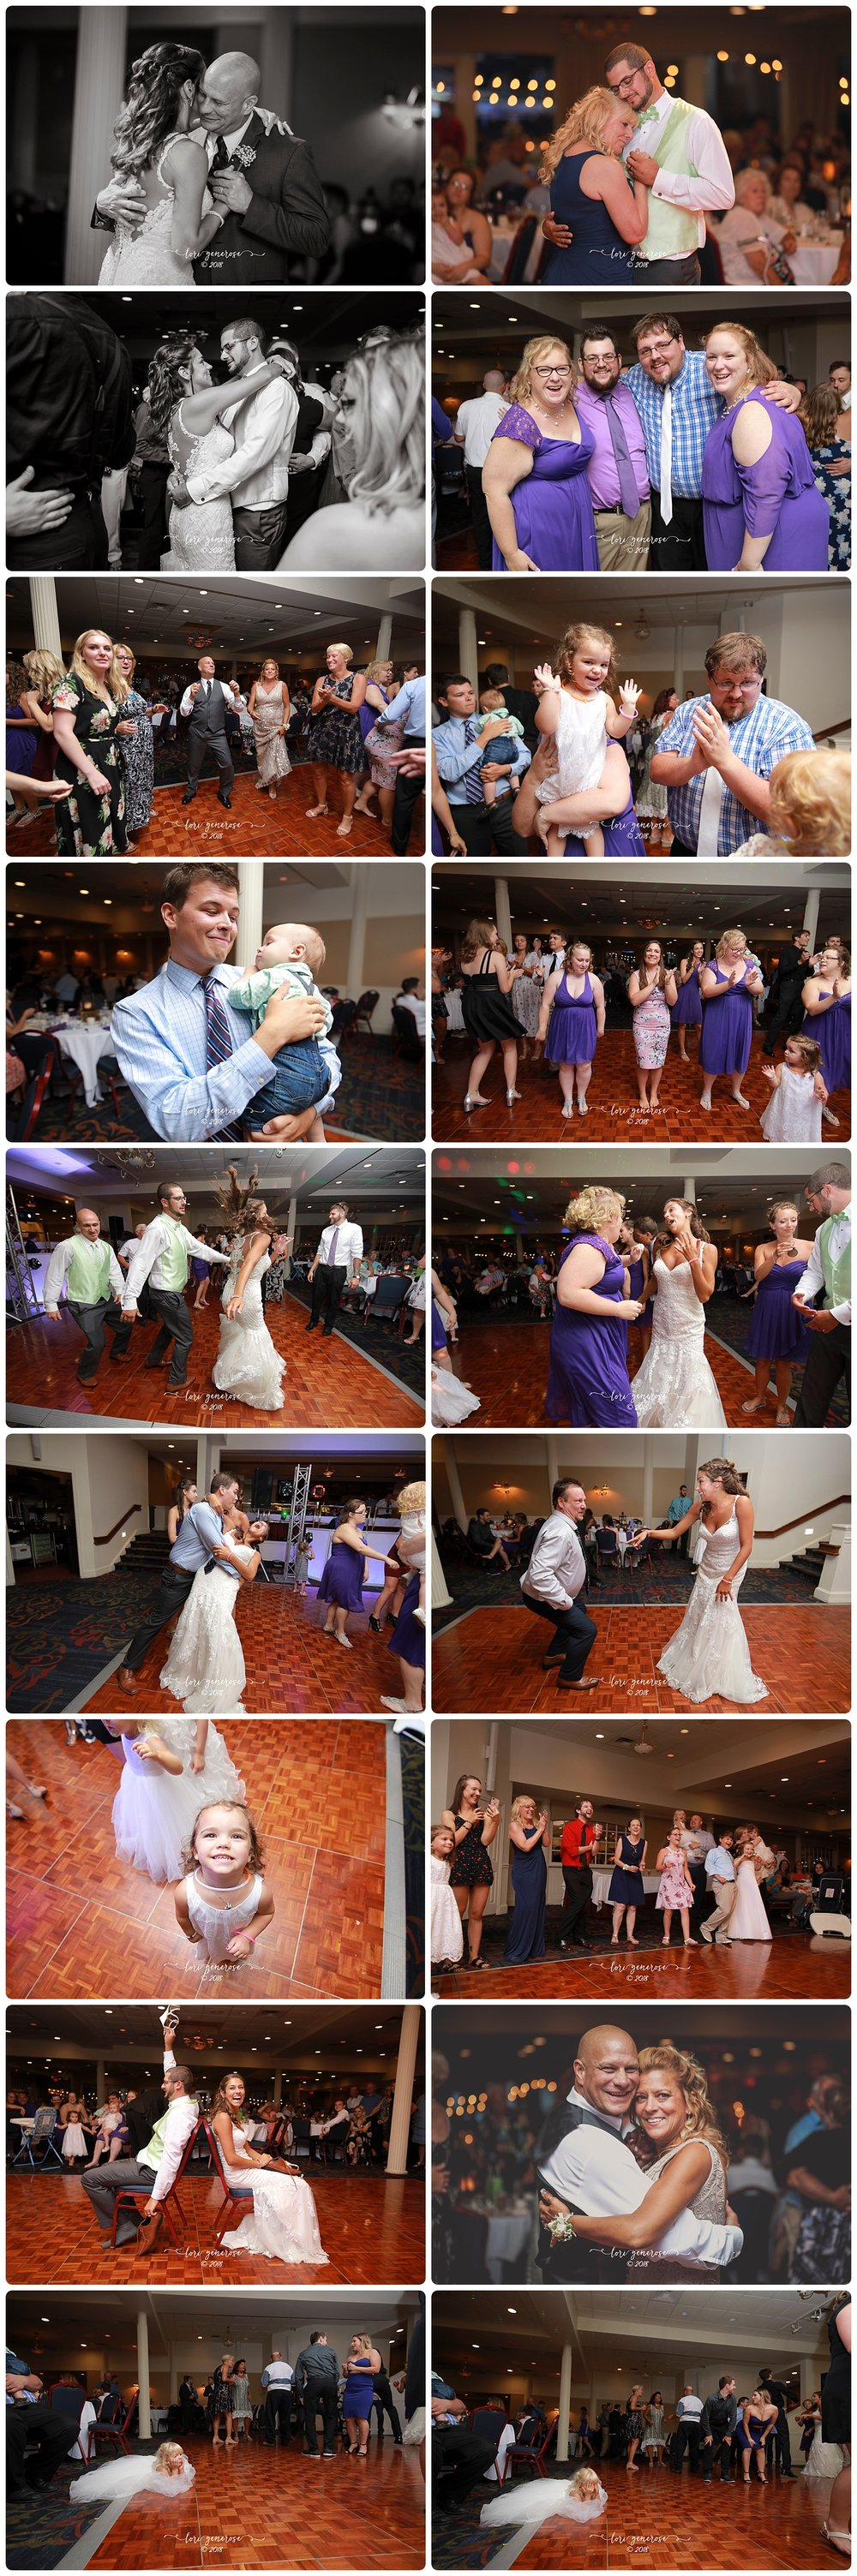 lgphotographylorigeneroseweddingatsilverbircheshawleypaweddingreceptiondancingphotos.jpg